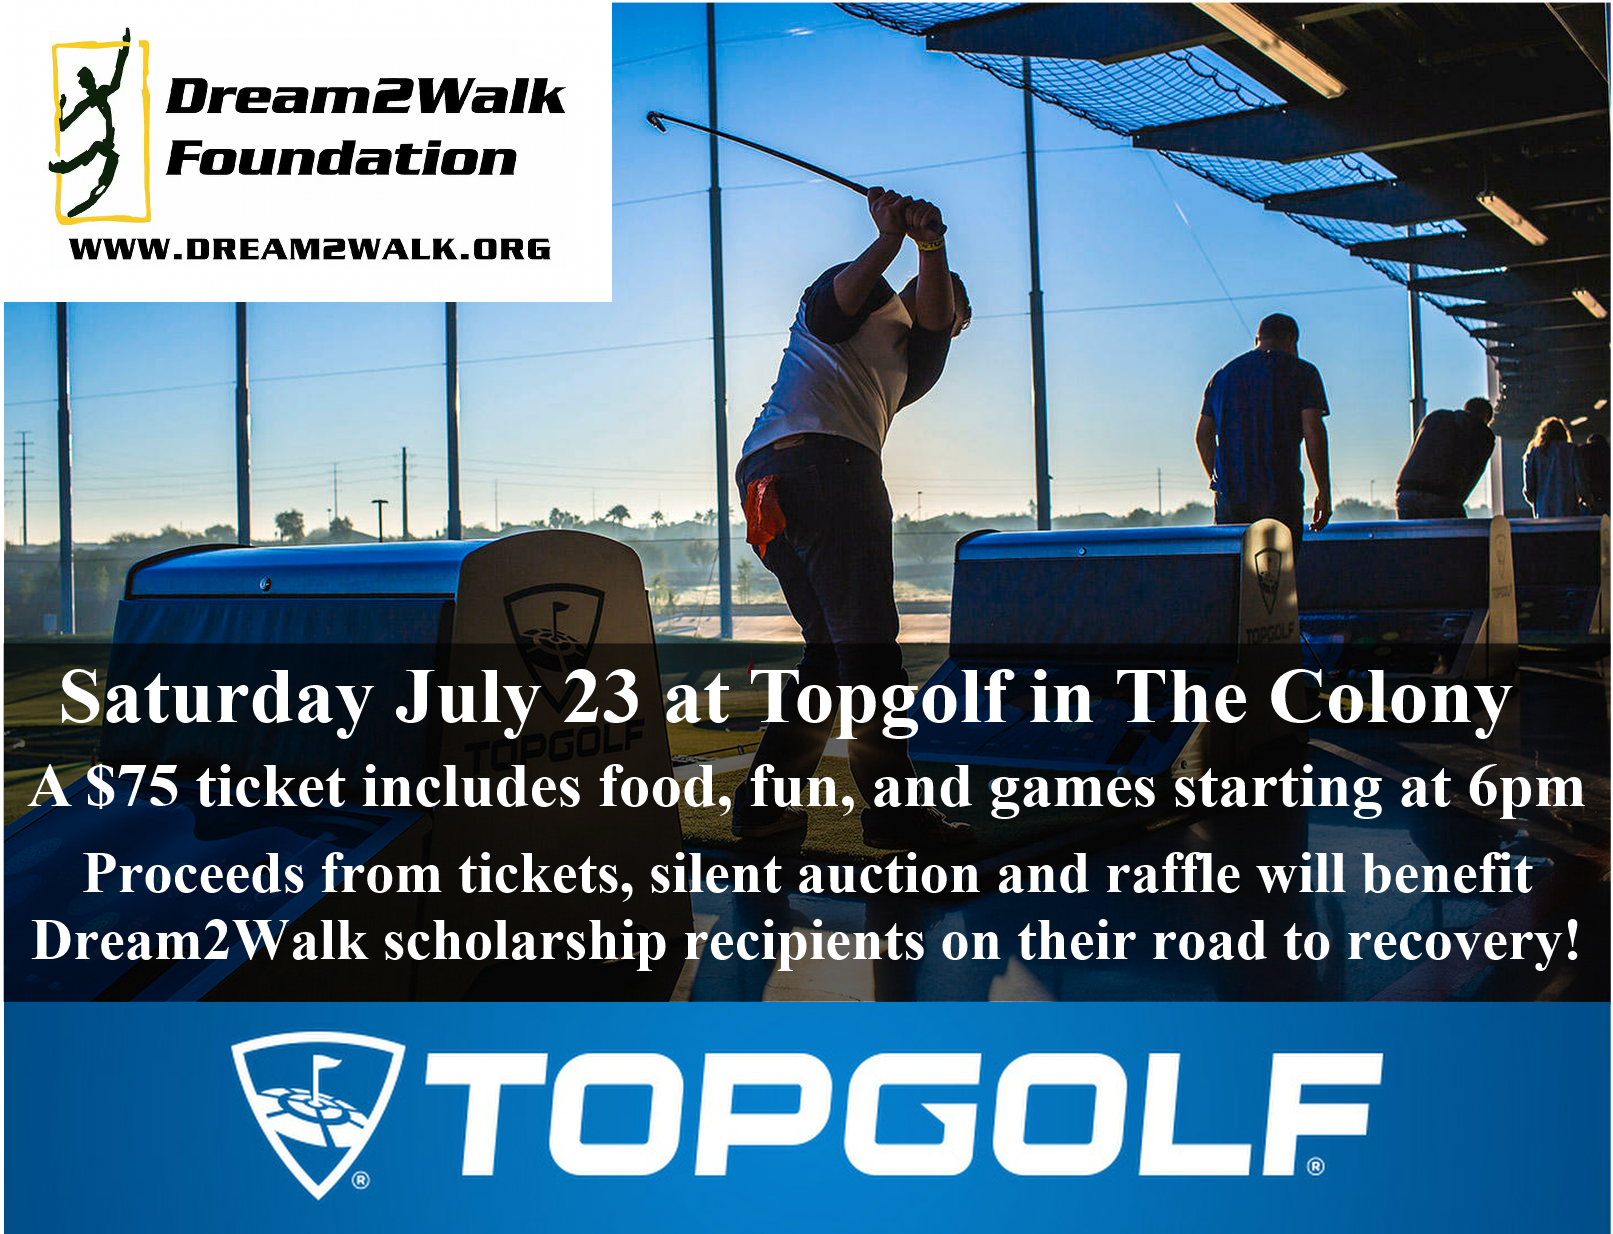 Top Golf The Colony 2016 Flyer Quarter Size Single 6-25-16